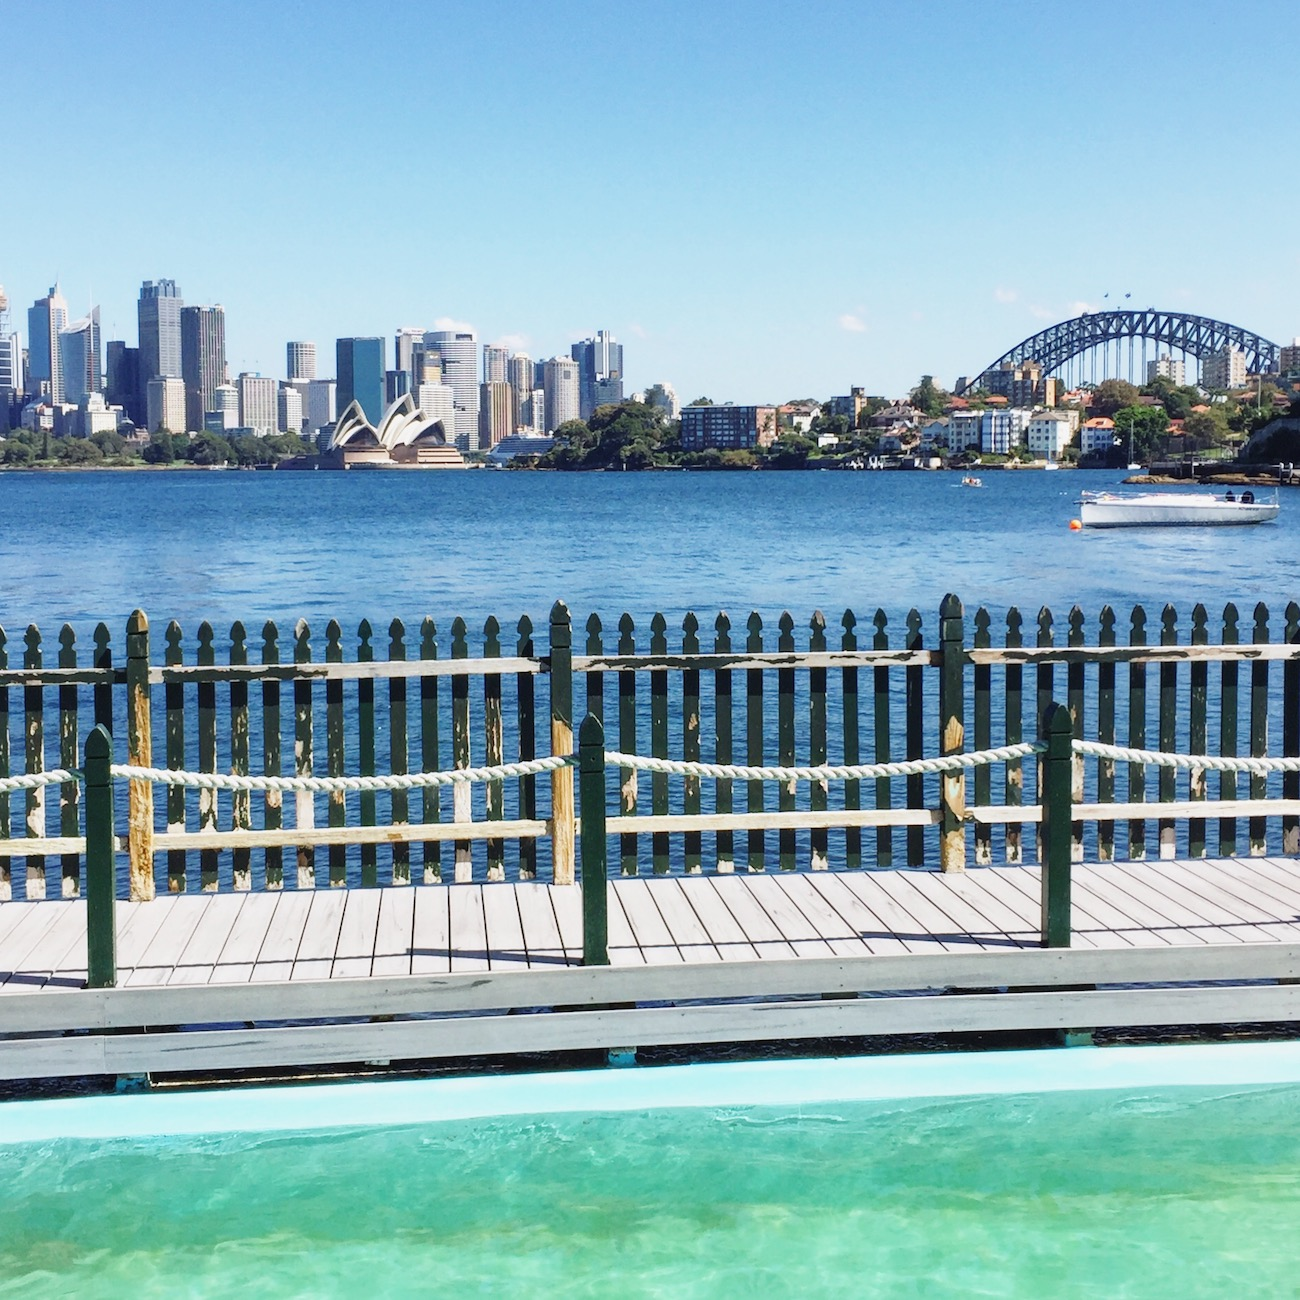 Maccallum Pool de Cremorne Point, Sydney